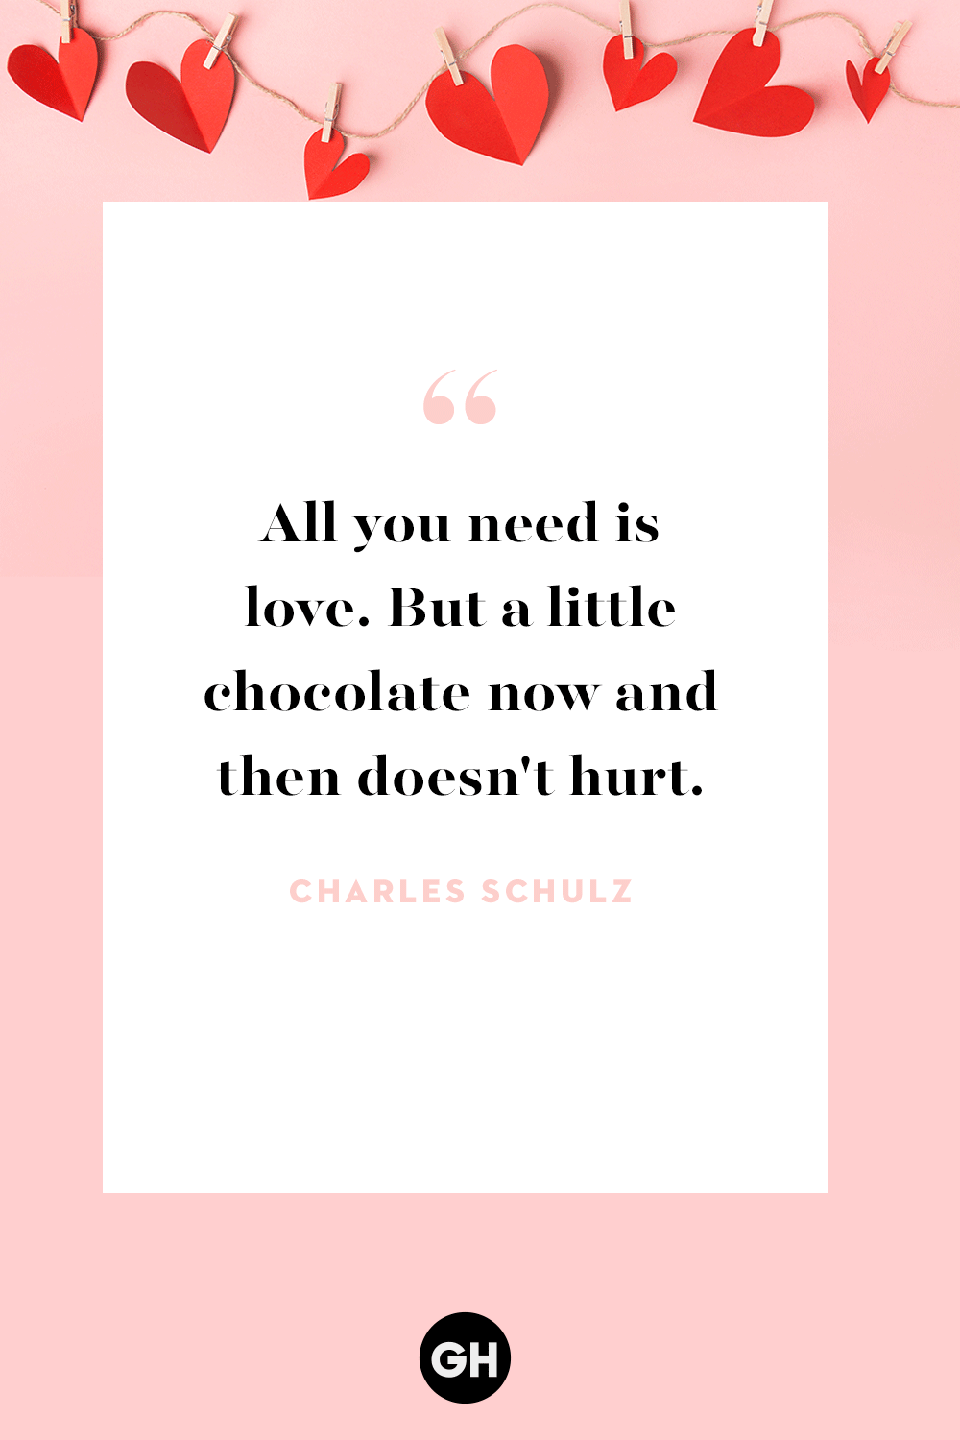 <p>All you need is love. But a little chocolate now and then doesn't hurt. </p>